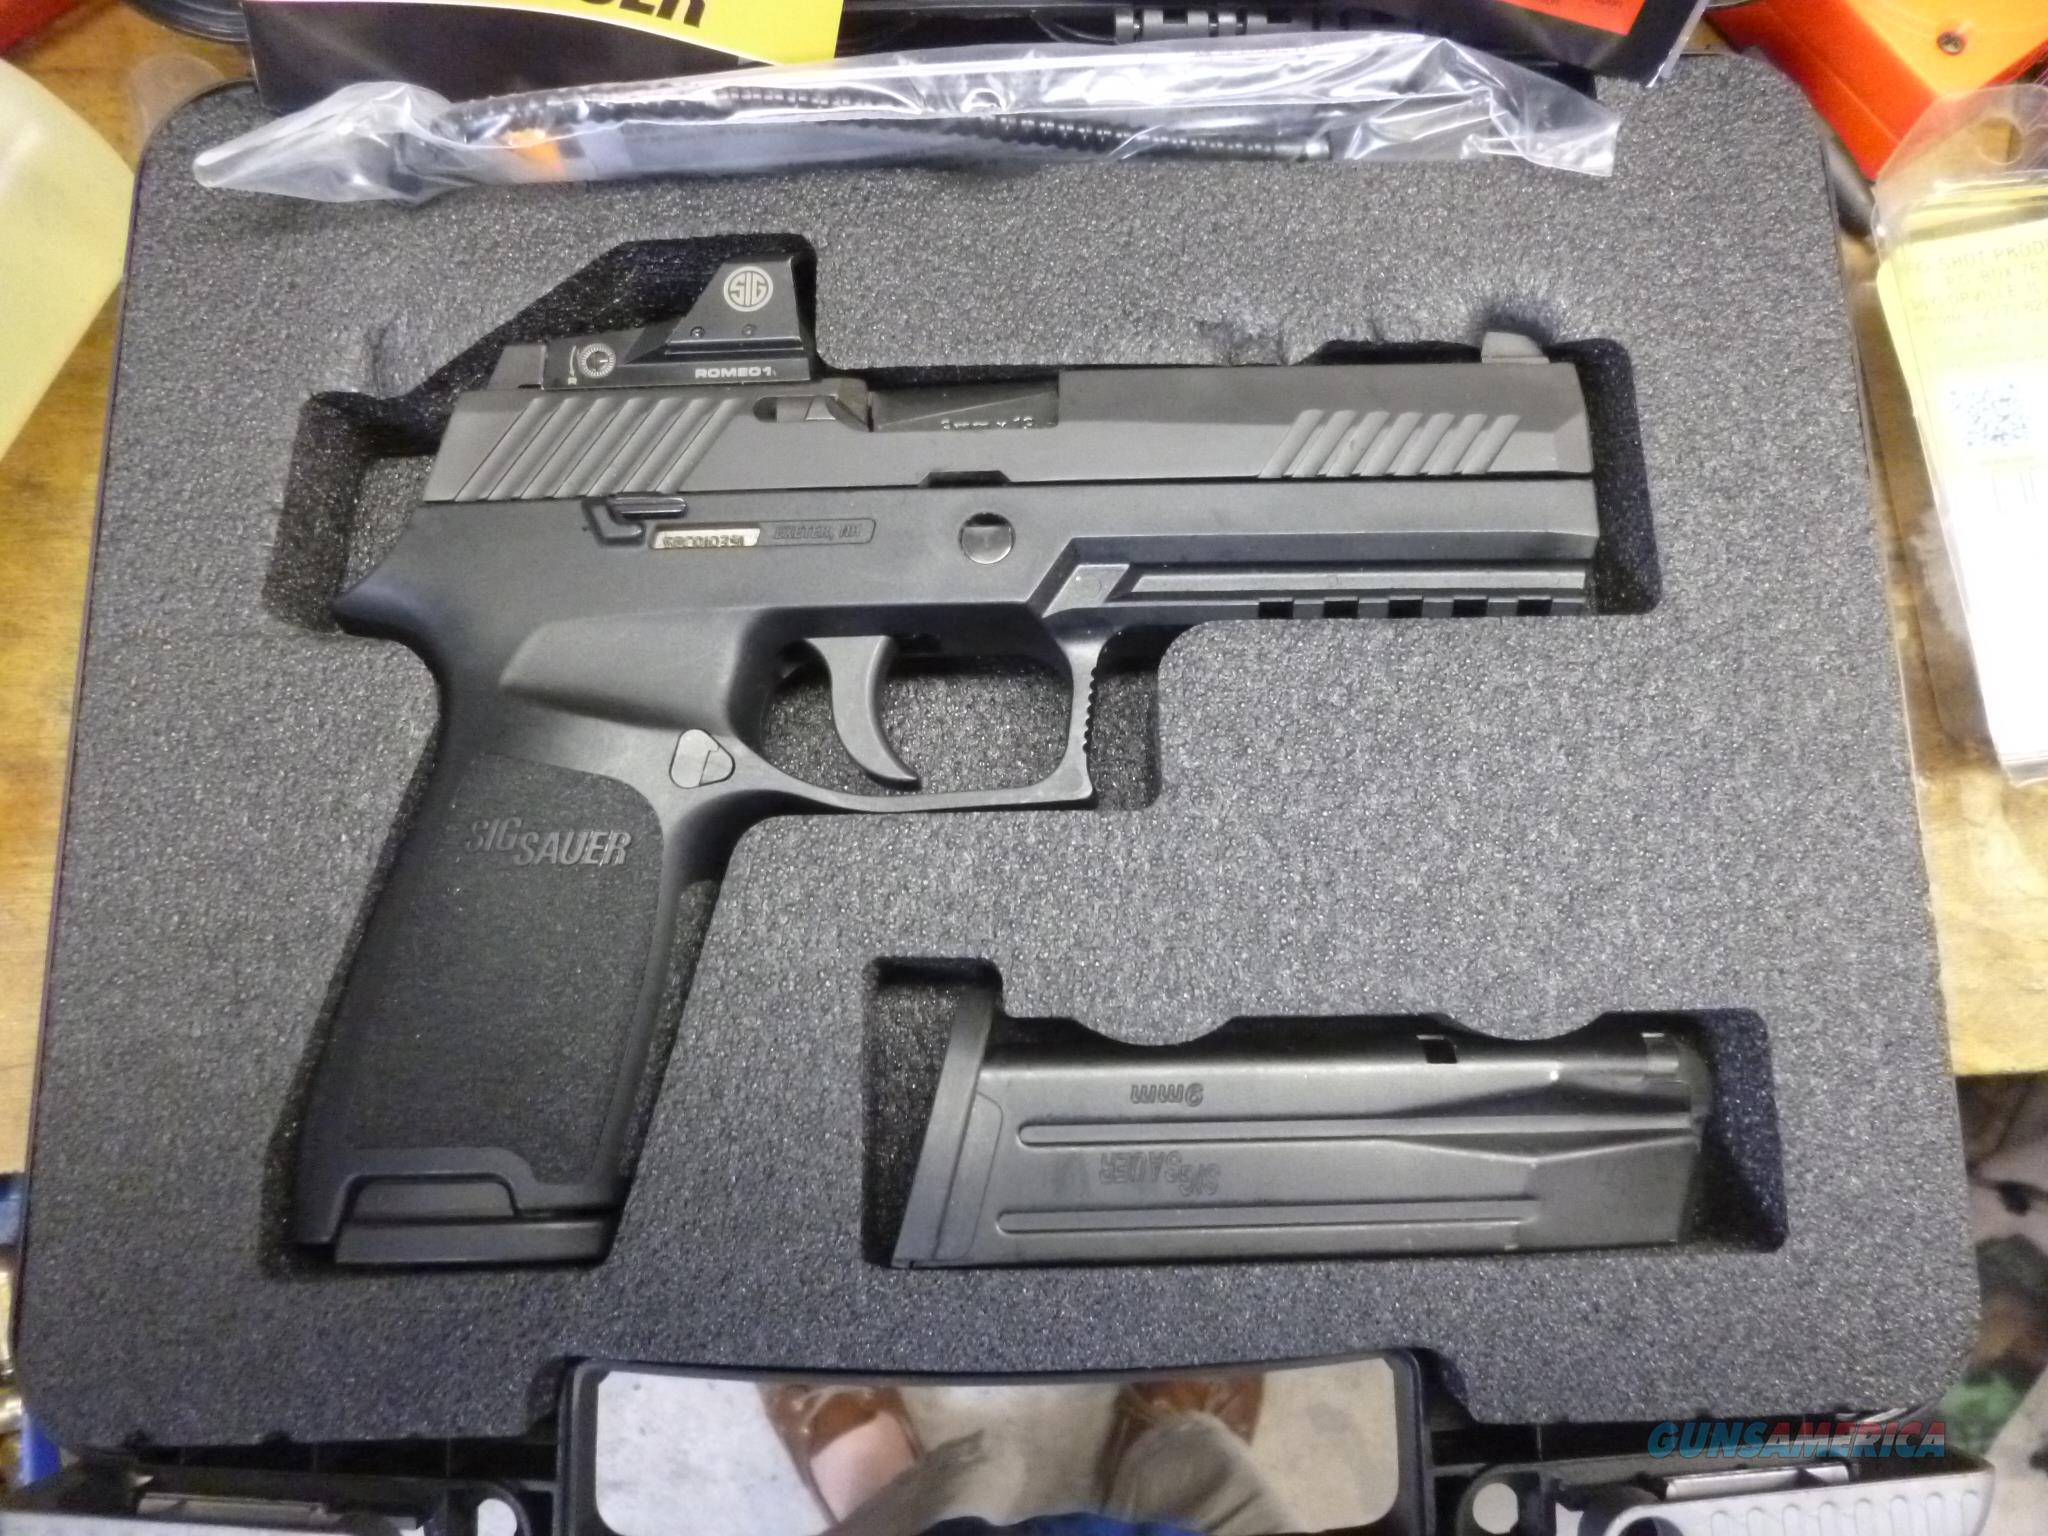 SIG P320 RX with Romeo Red Dot Sight  Guns > Pistols > Sig - Sauer/Sigarms Pistols > P320